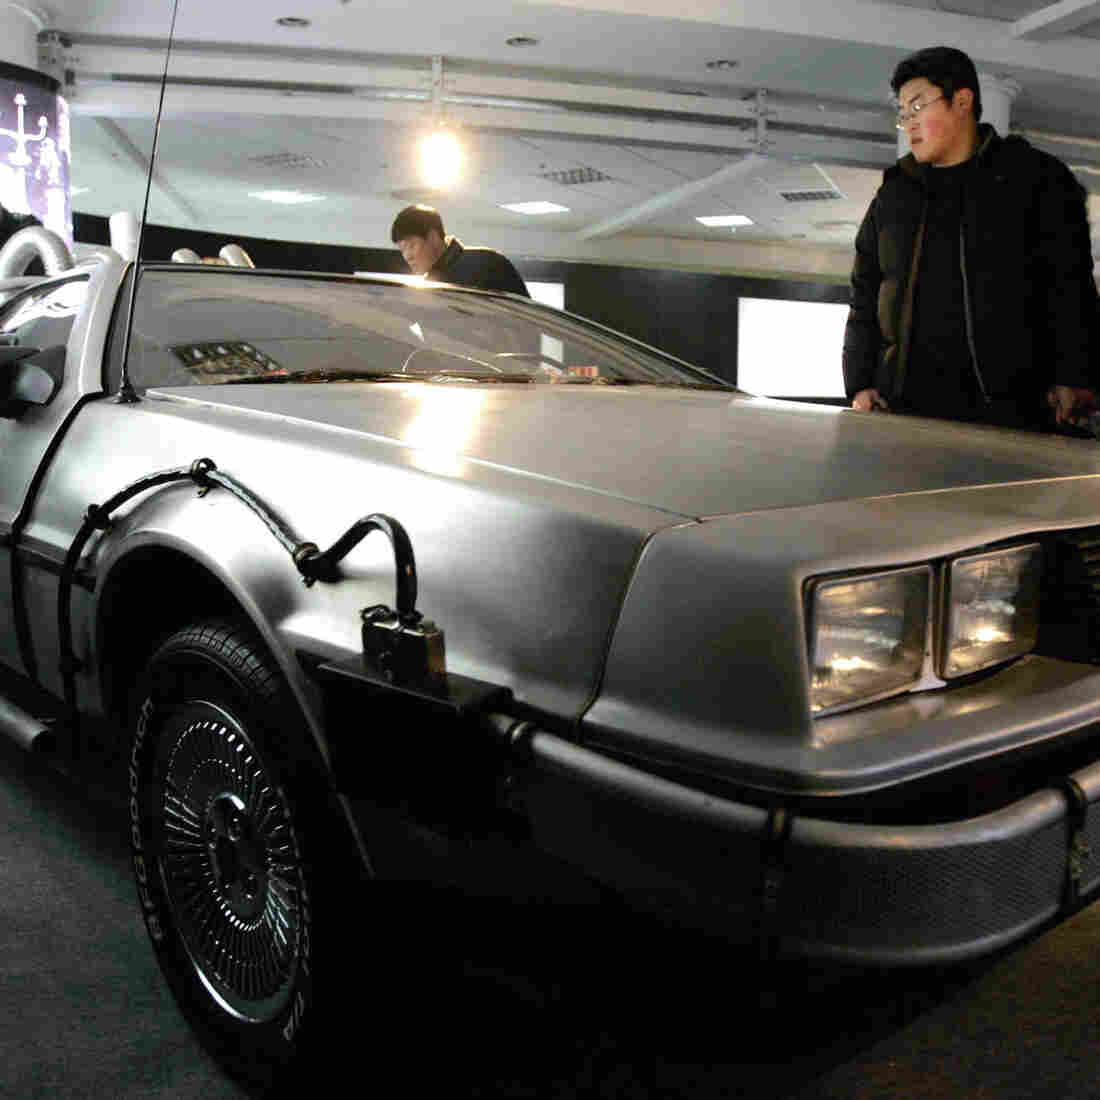 Cars like this DeLorean that was used in the 1980s sci-fi Back to the Future movies may be back on the roads next year.